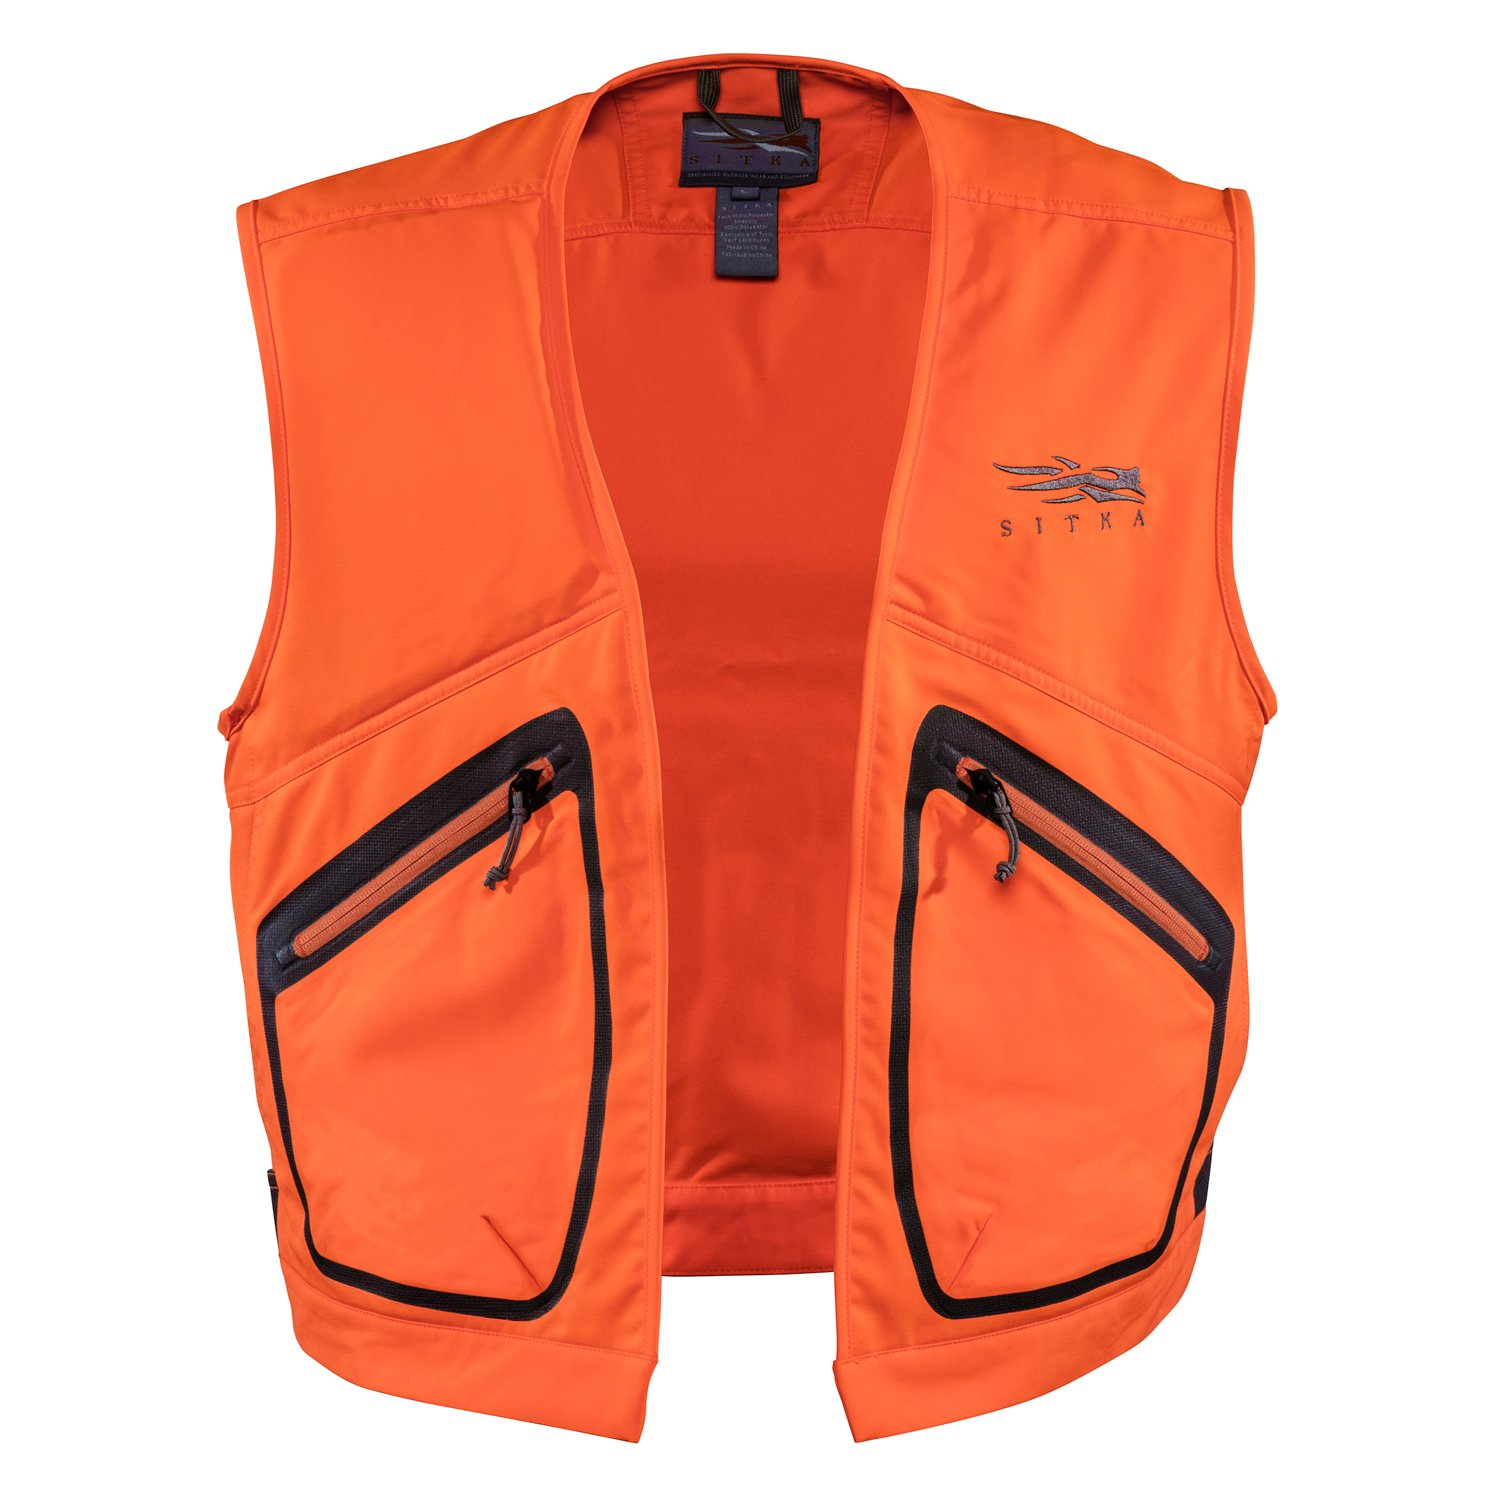 SITKA Gear Ballistic Vest Blaze Orange XX Large